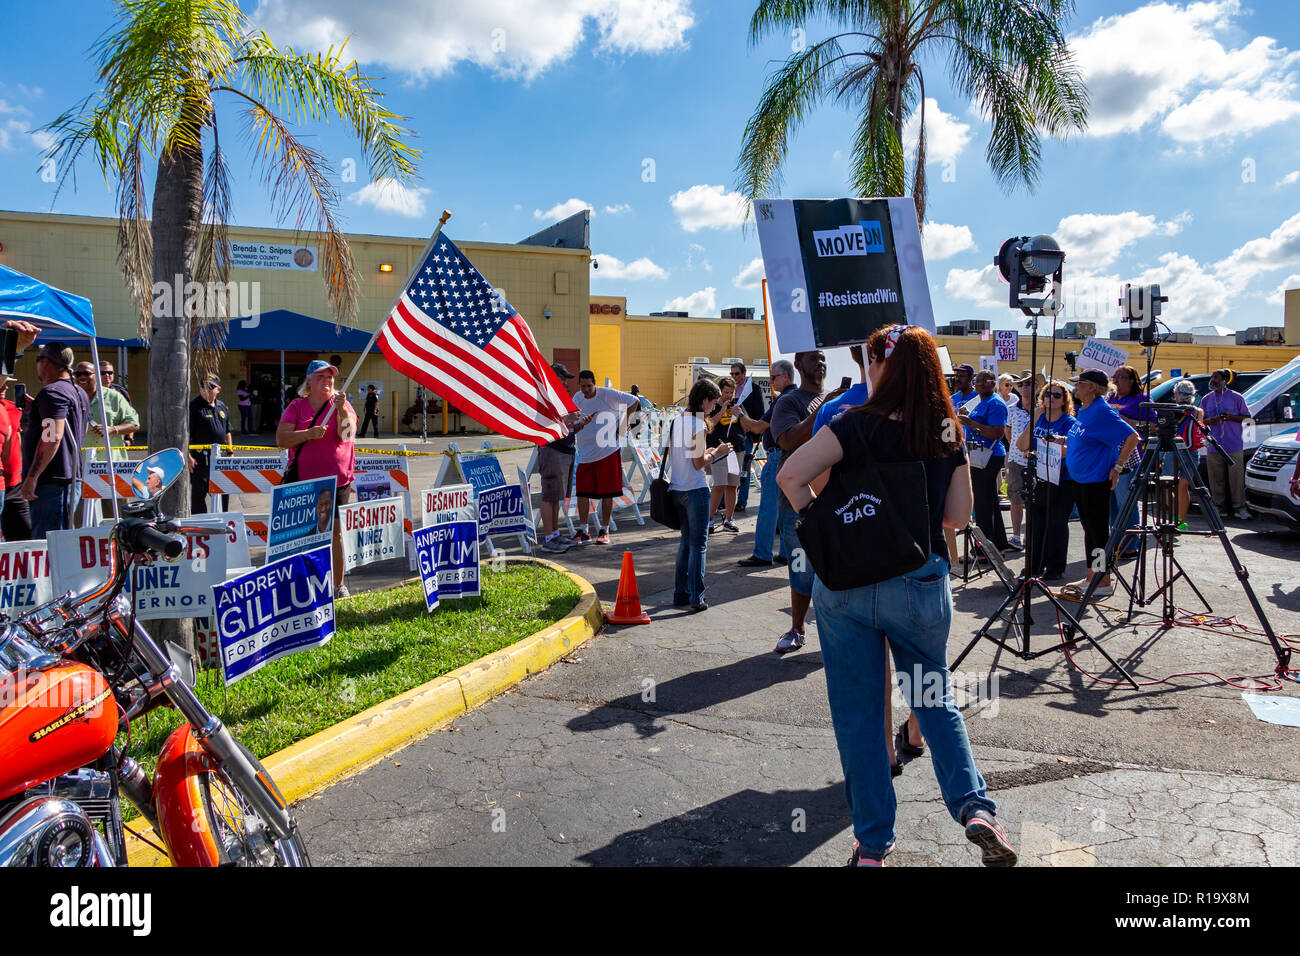 Lauderhill, Florida, USA  10th Nov, 2018  A republican woman waves a